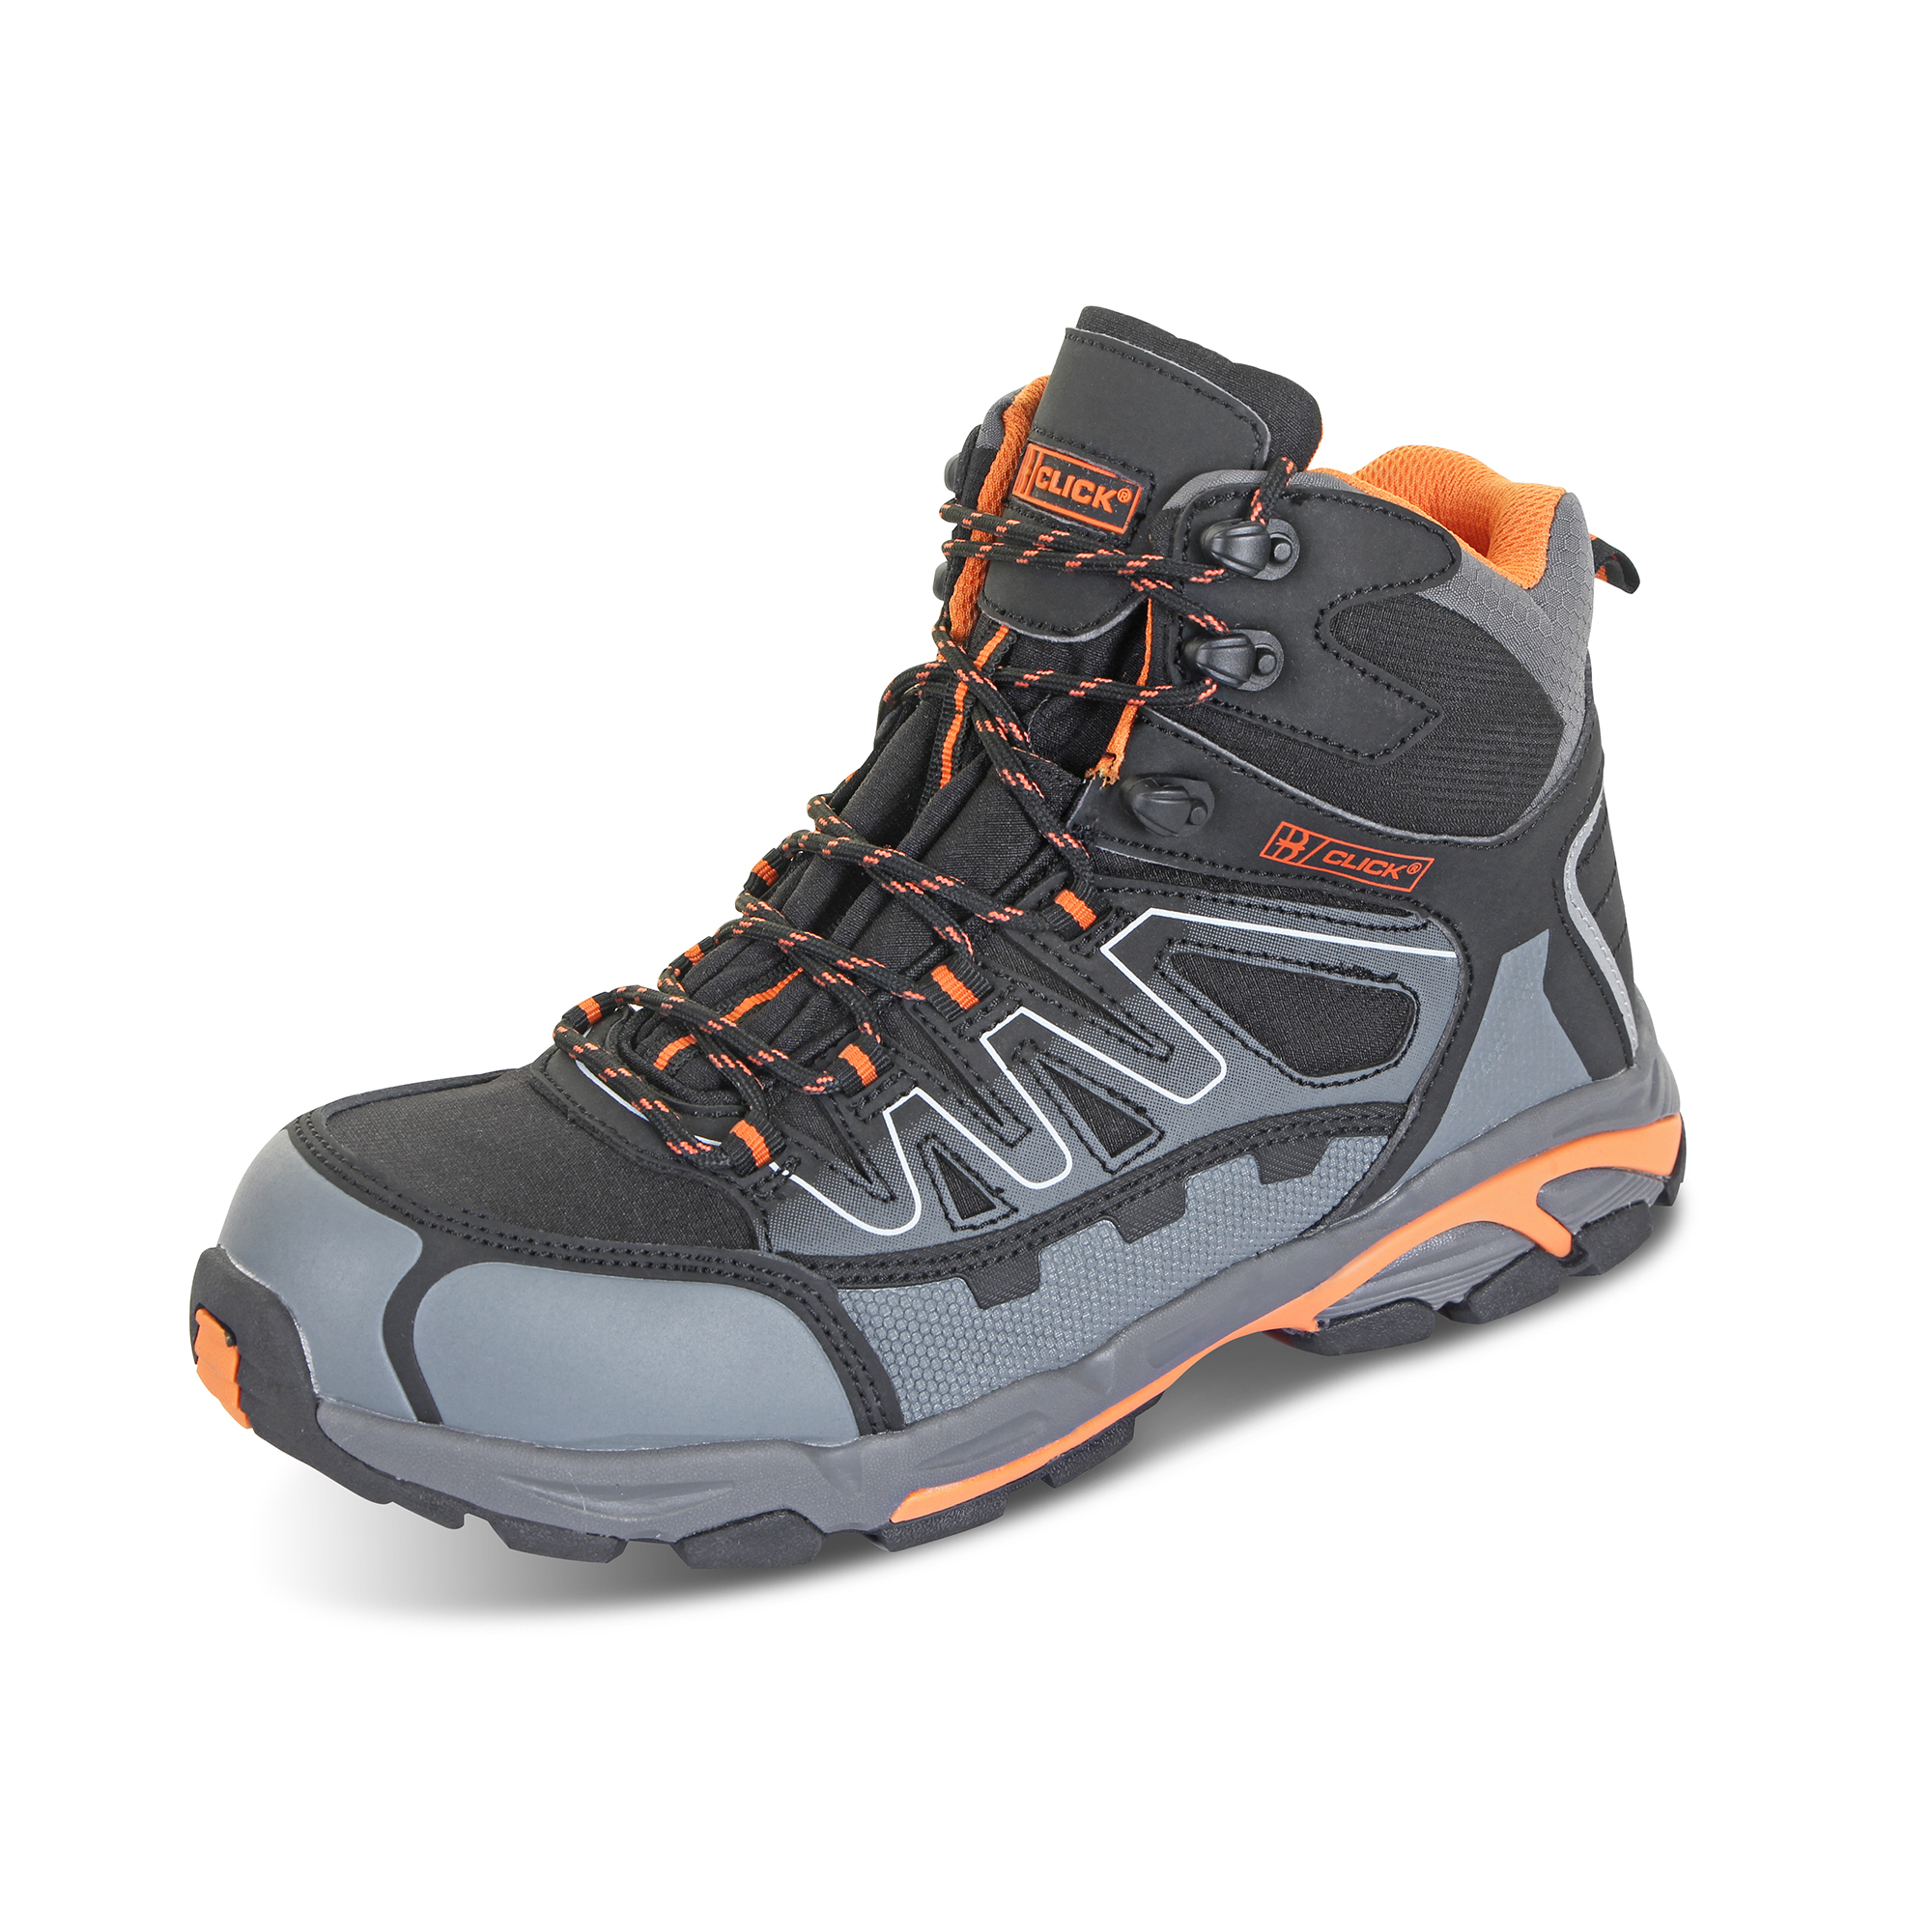 Limitless Click Footwear Leather S3 Hiker Boot Composite Toe Size 11 Black/Grey Ref CF3511 *Up to 3 Day Leadtime*